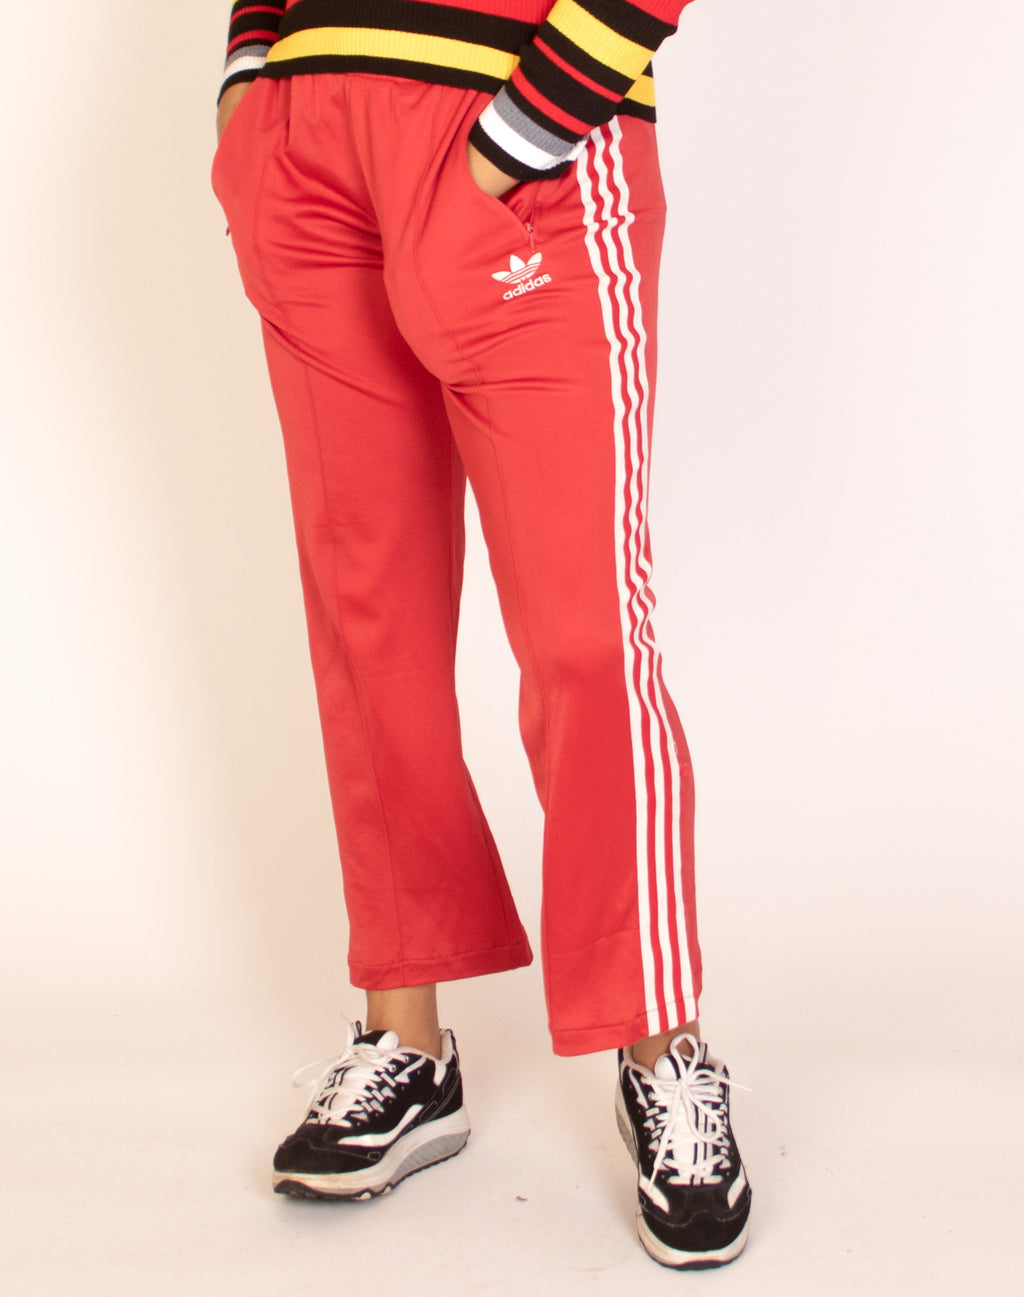 ADIDAS RED JOGGERS